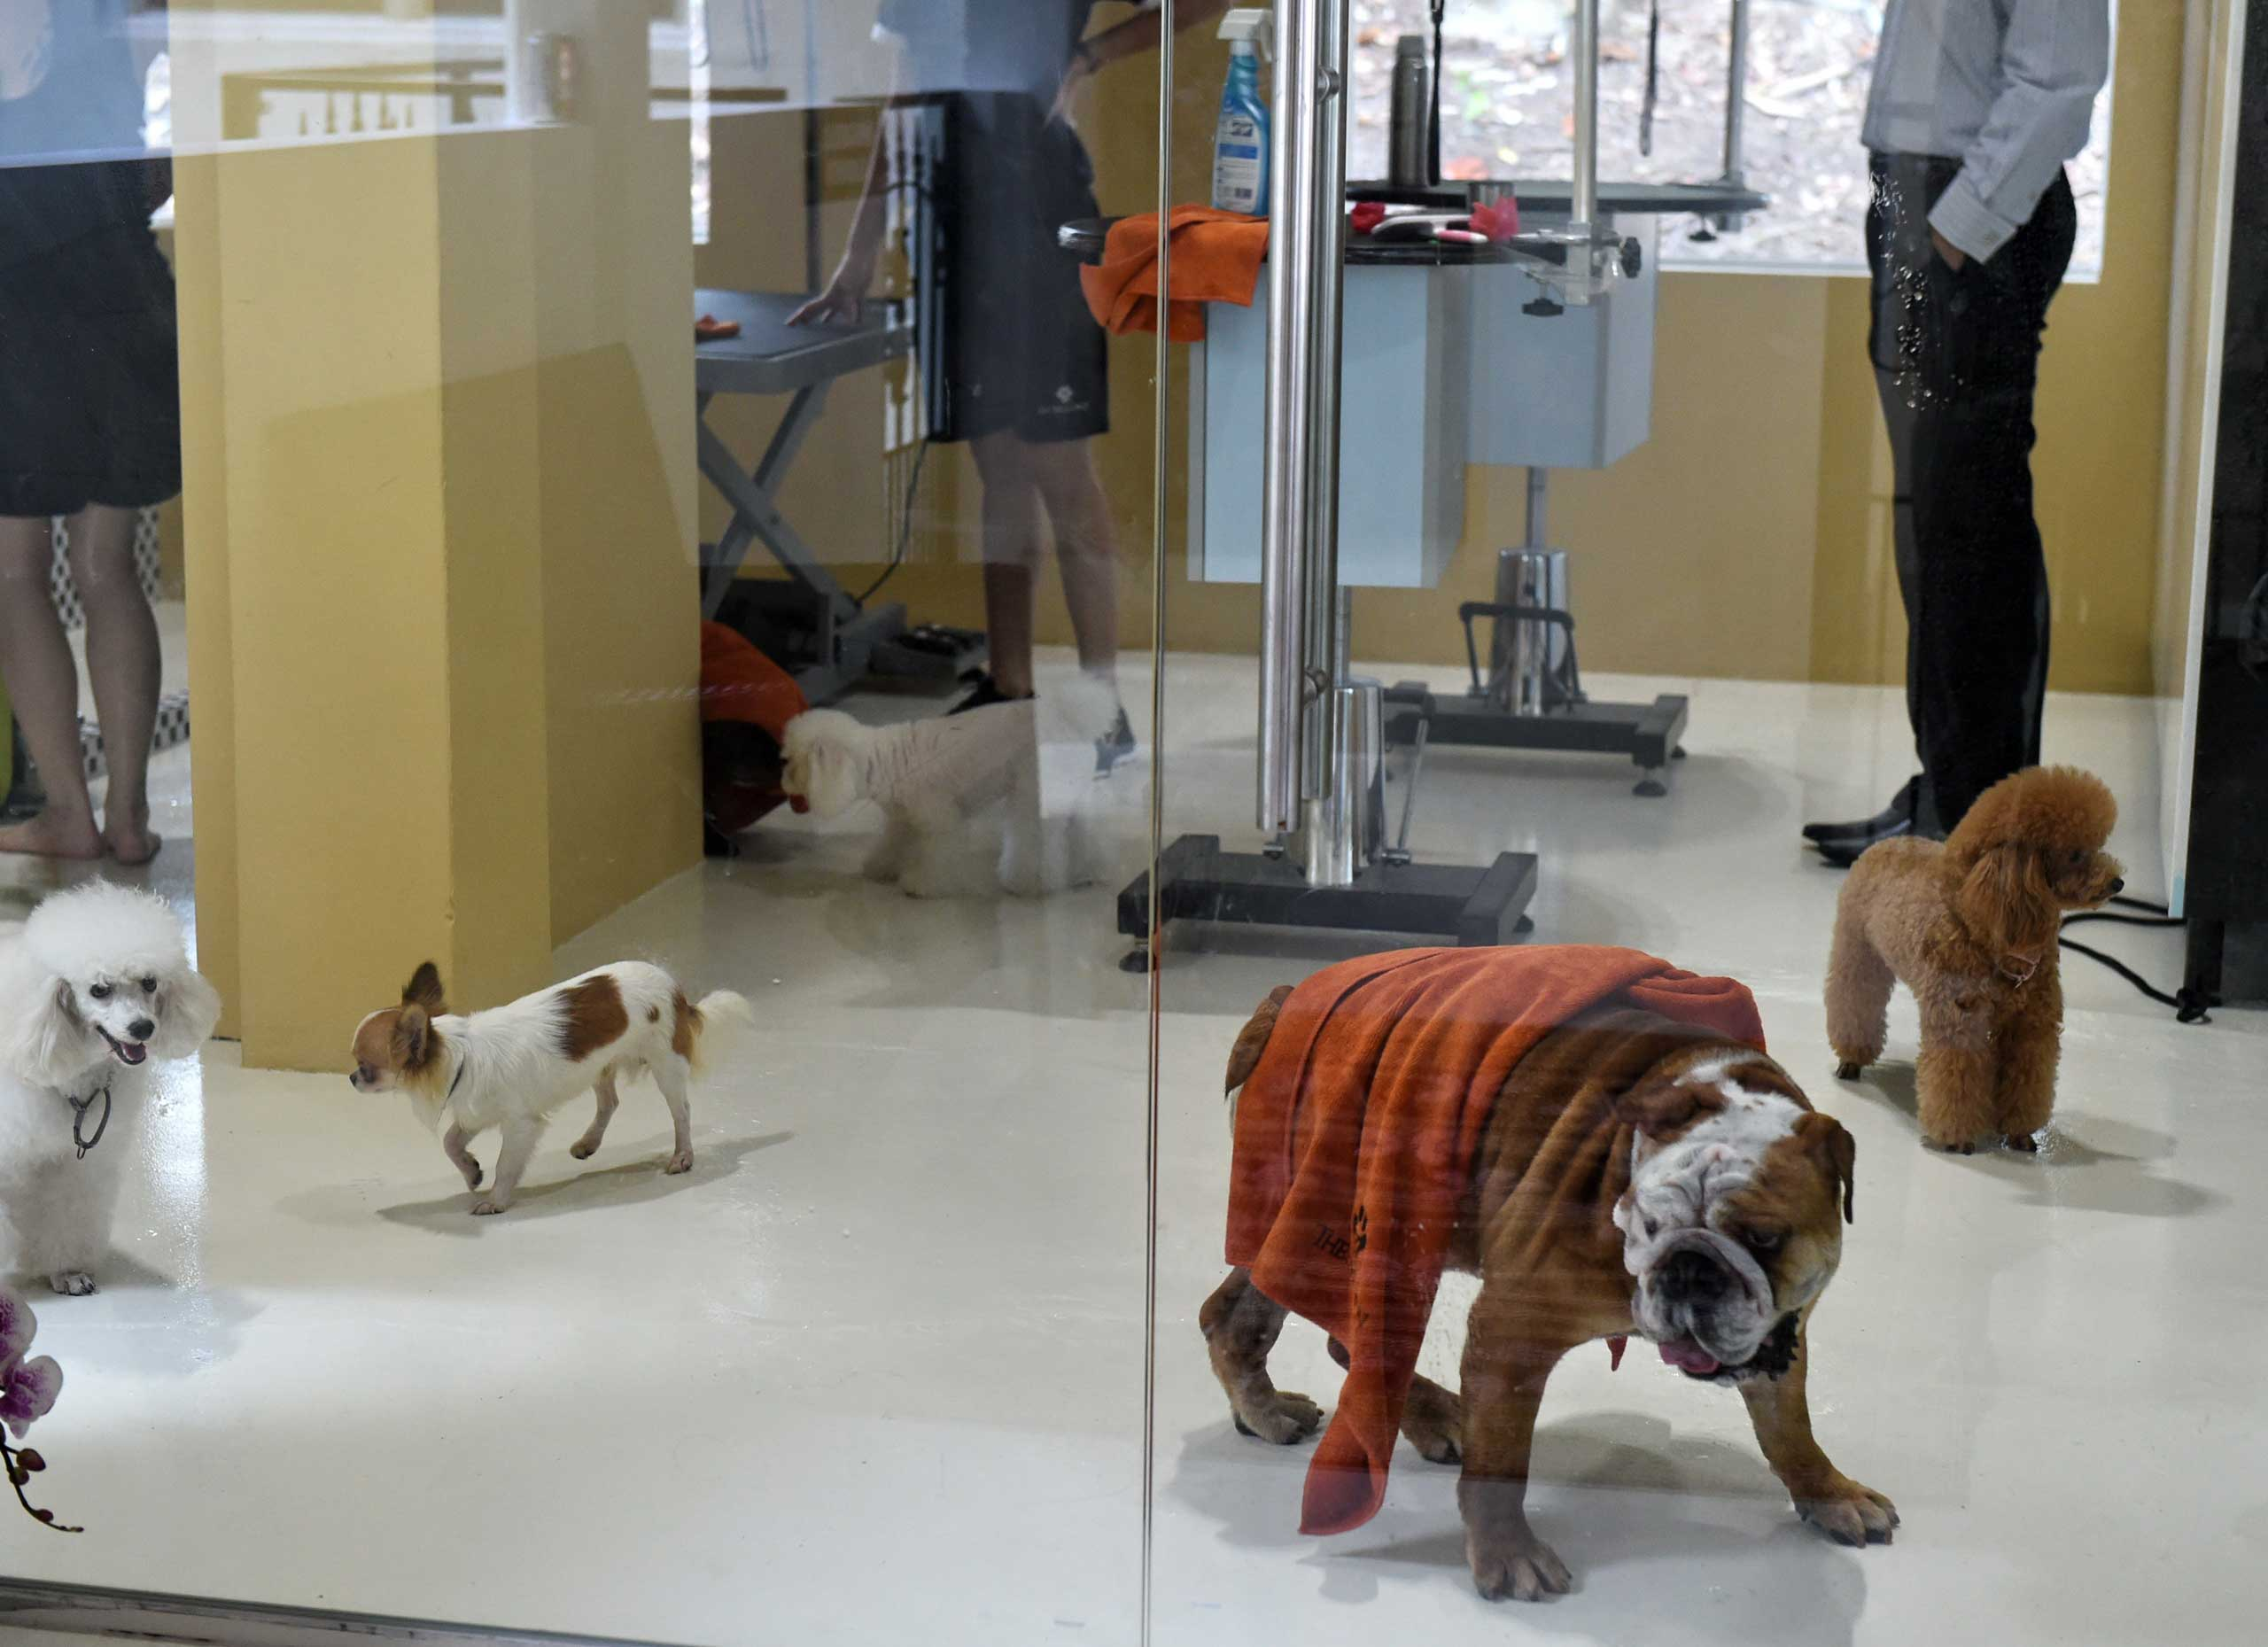 Nov. 4, 2014. Dogs trot around in a spa and grooming room at The Wagington Luxury Pet Hotel in Singapore on its opening day, giving wealthy pet owners a new option to pamper their furry companions.